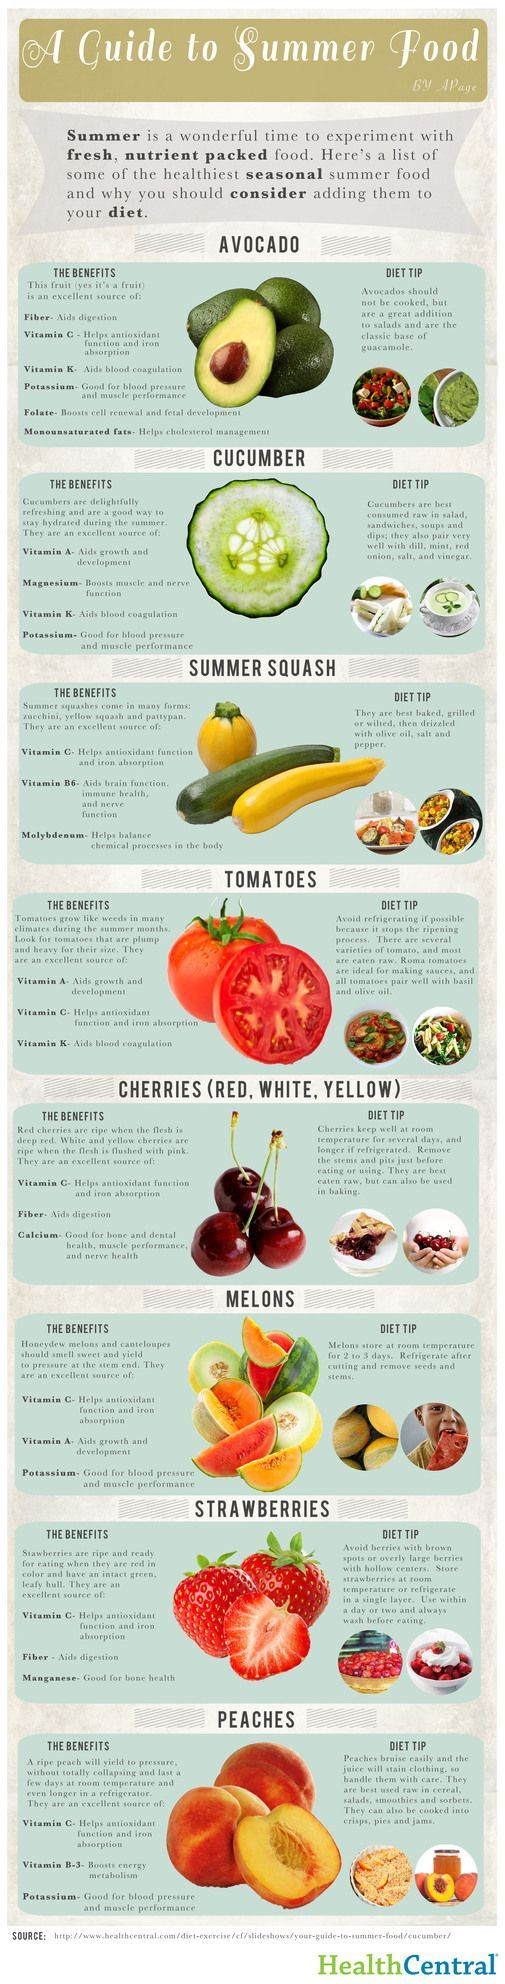 Infographic: A Guide to Summer Foods | outlines some of summer's best fruits and vegetables, and their health benefits.